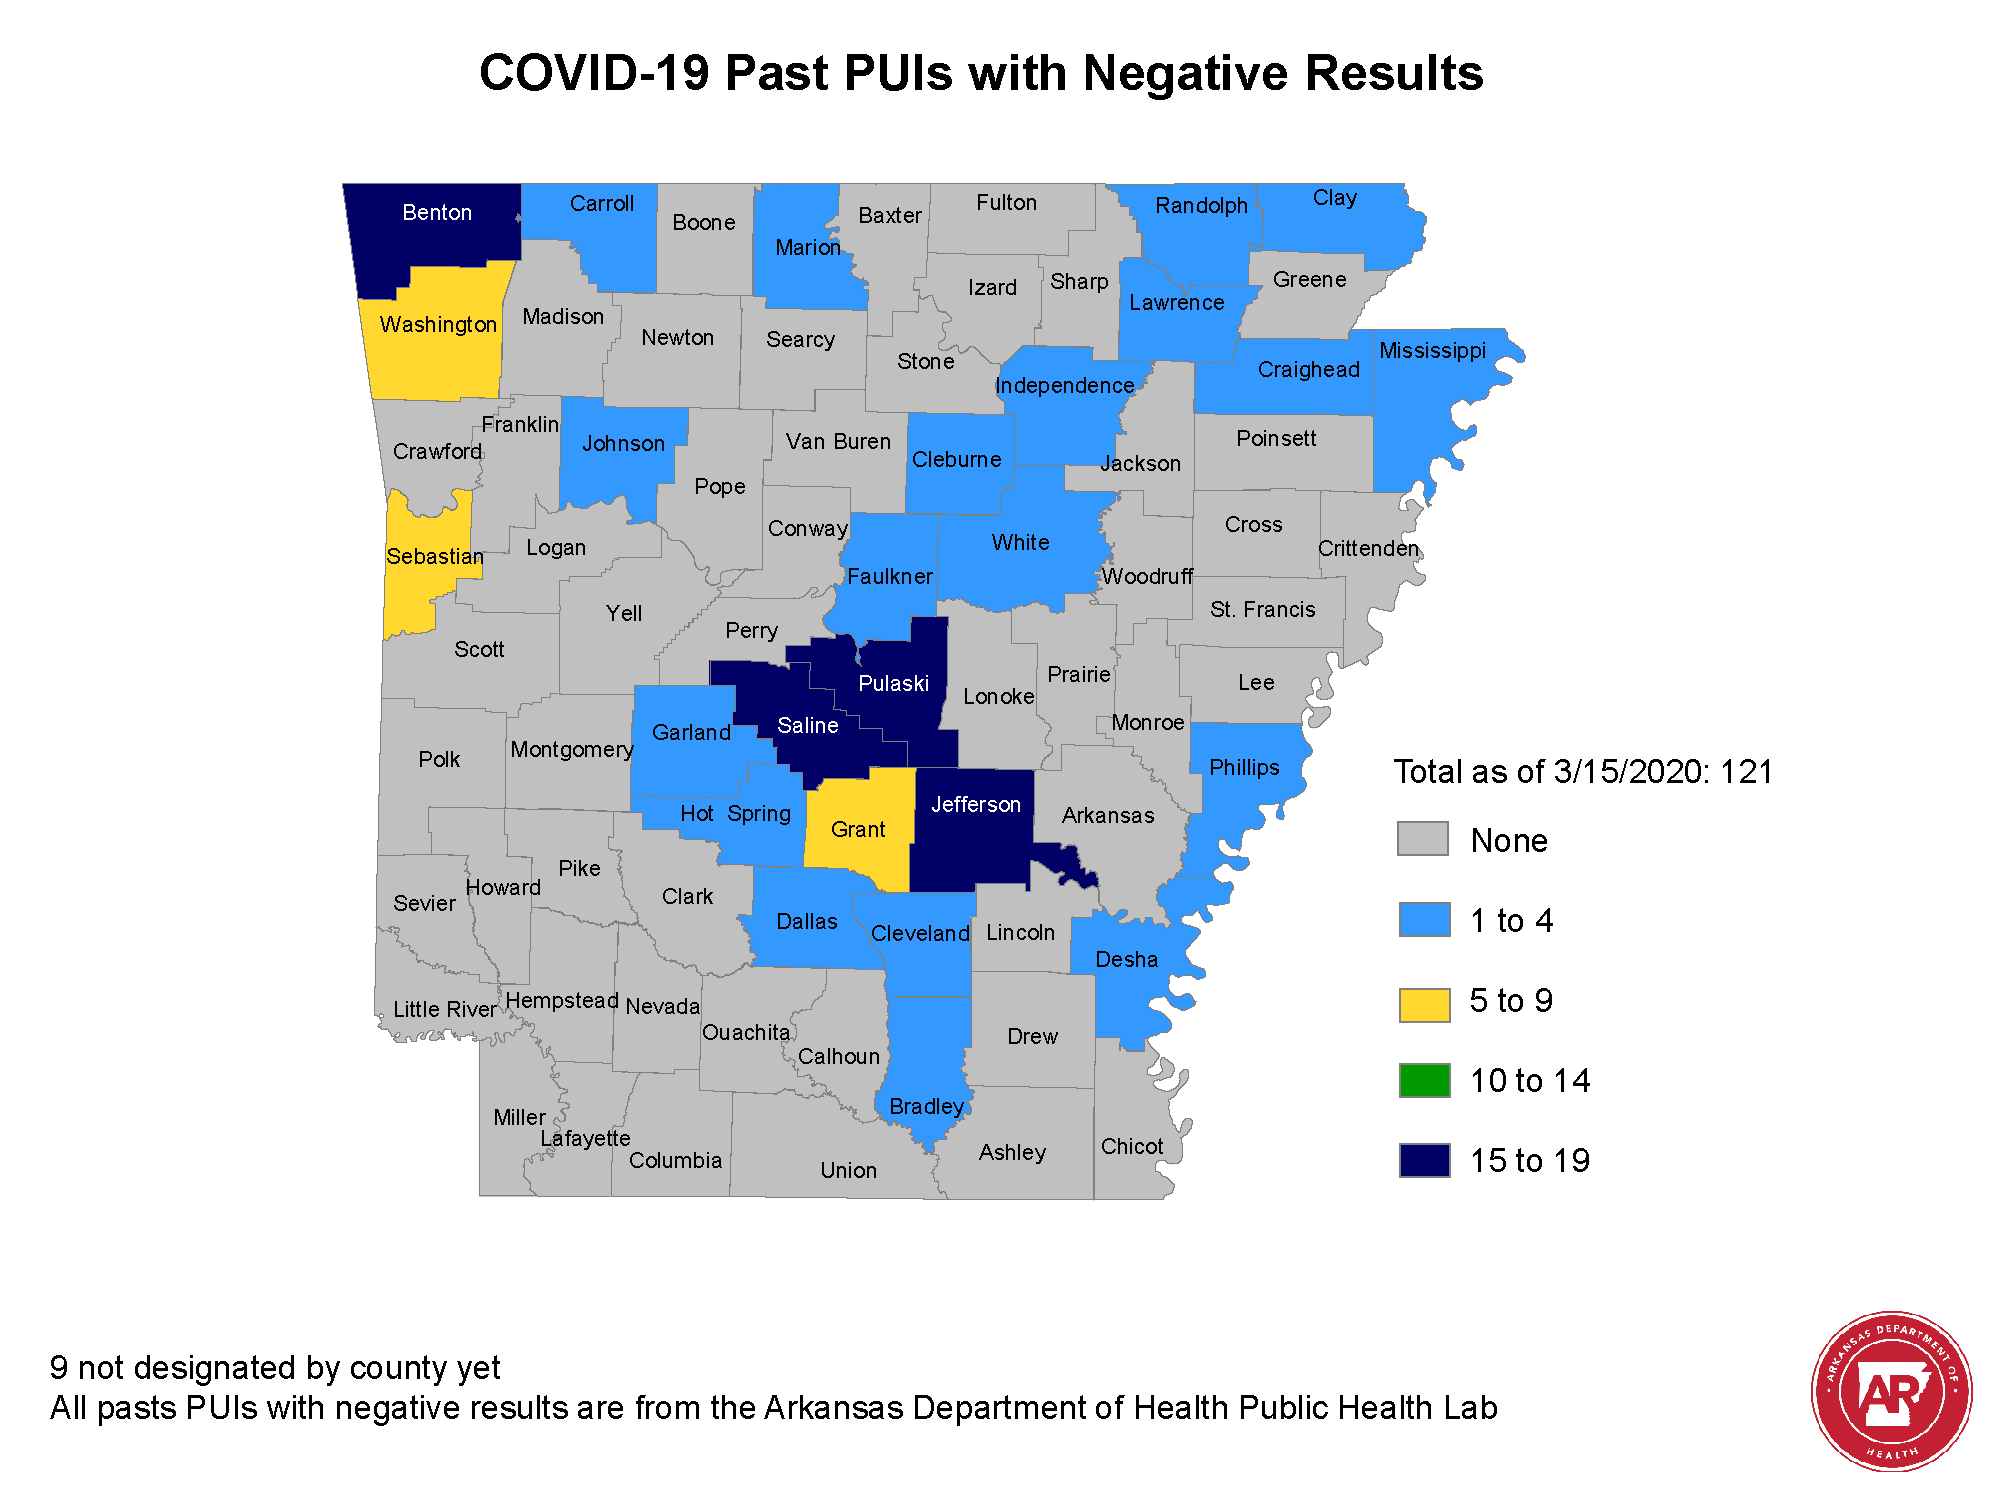 COVID-19_Past_PUIs_w_Neg_results_3.15.20.png